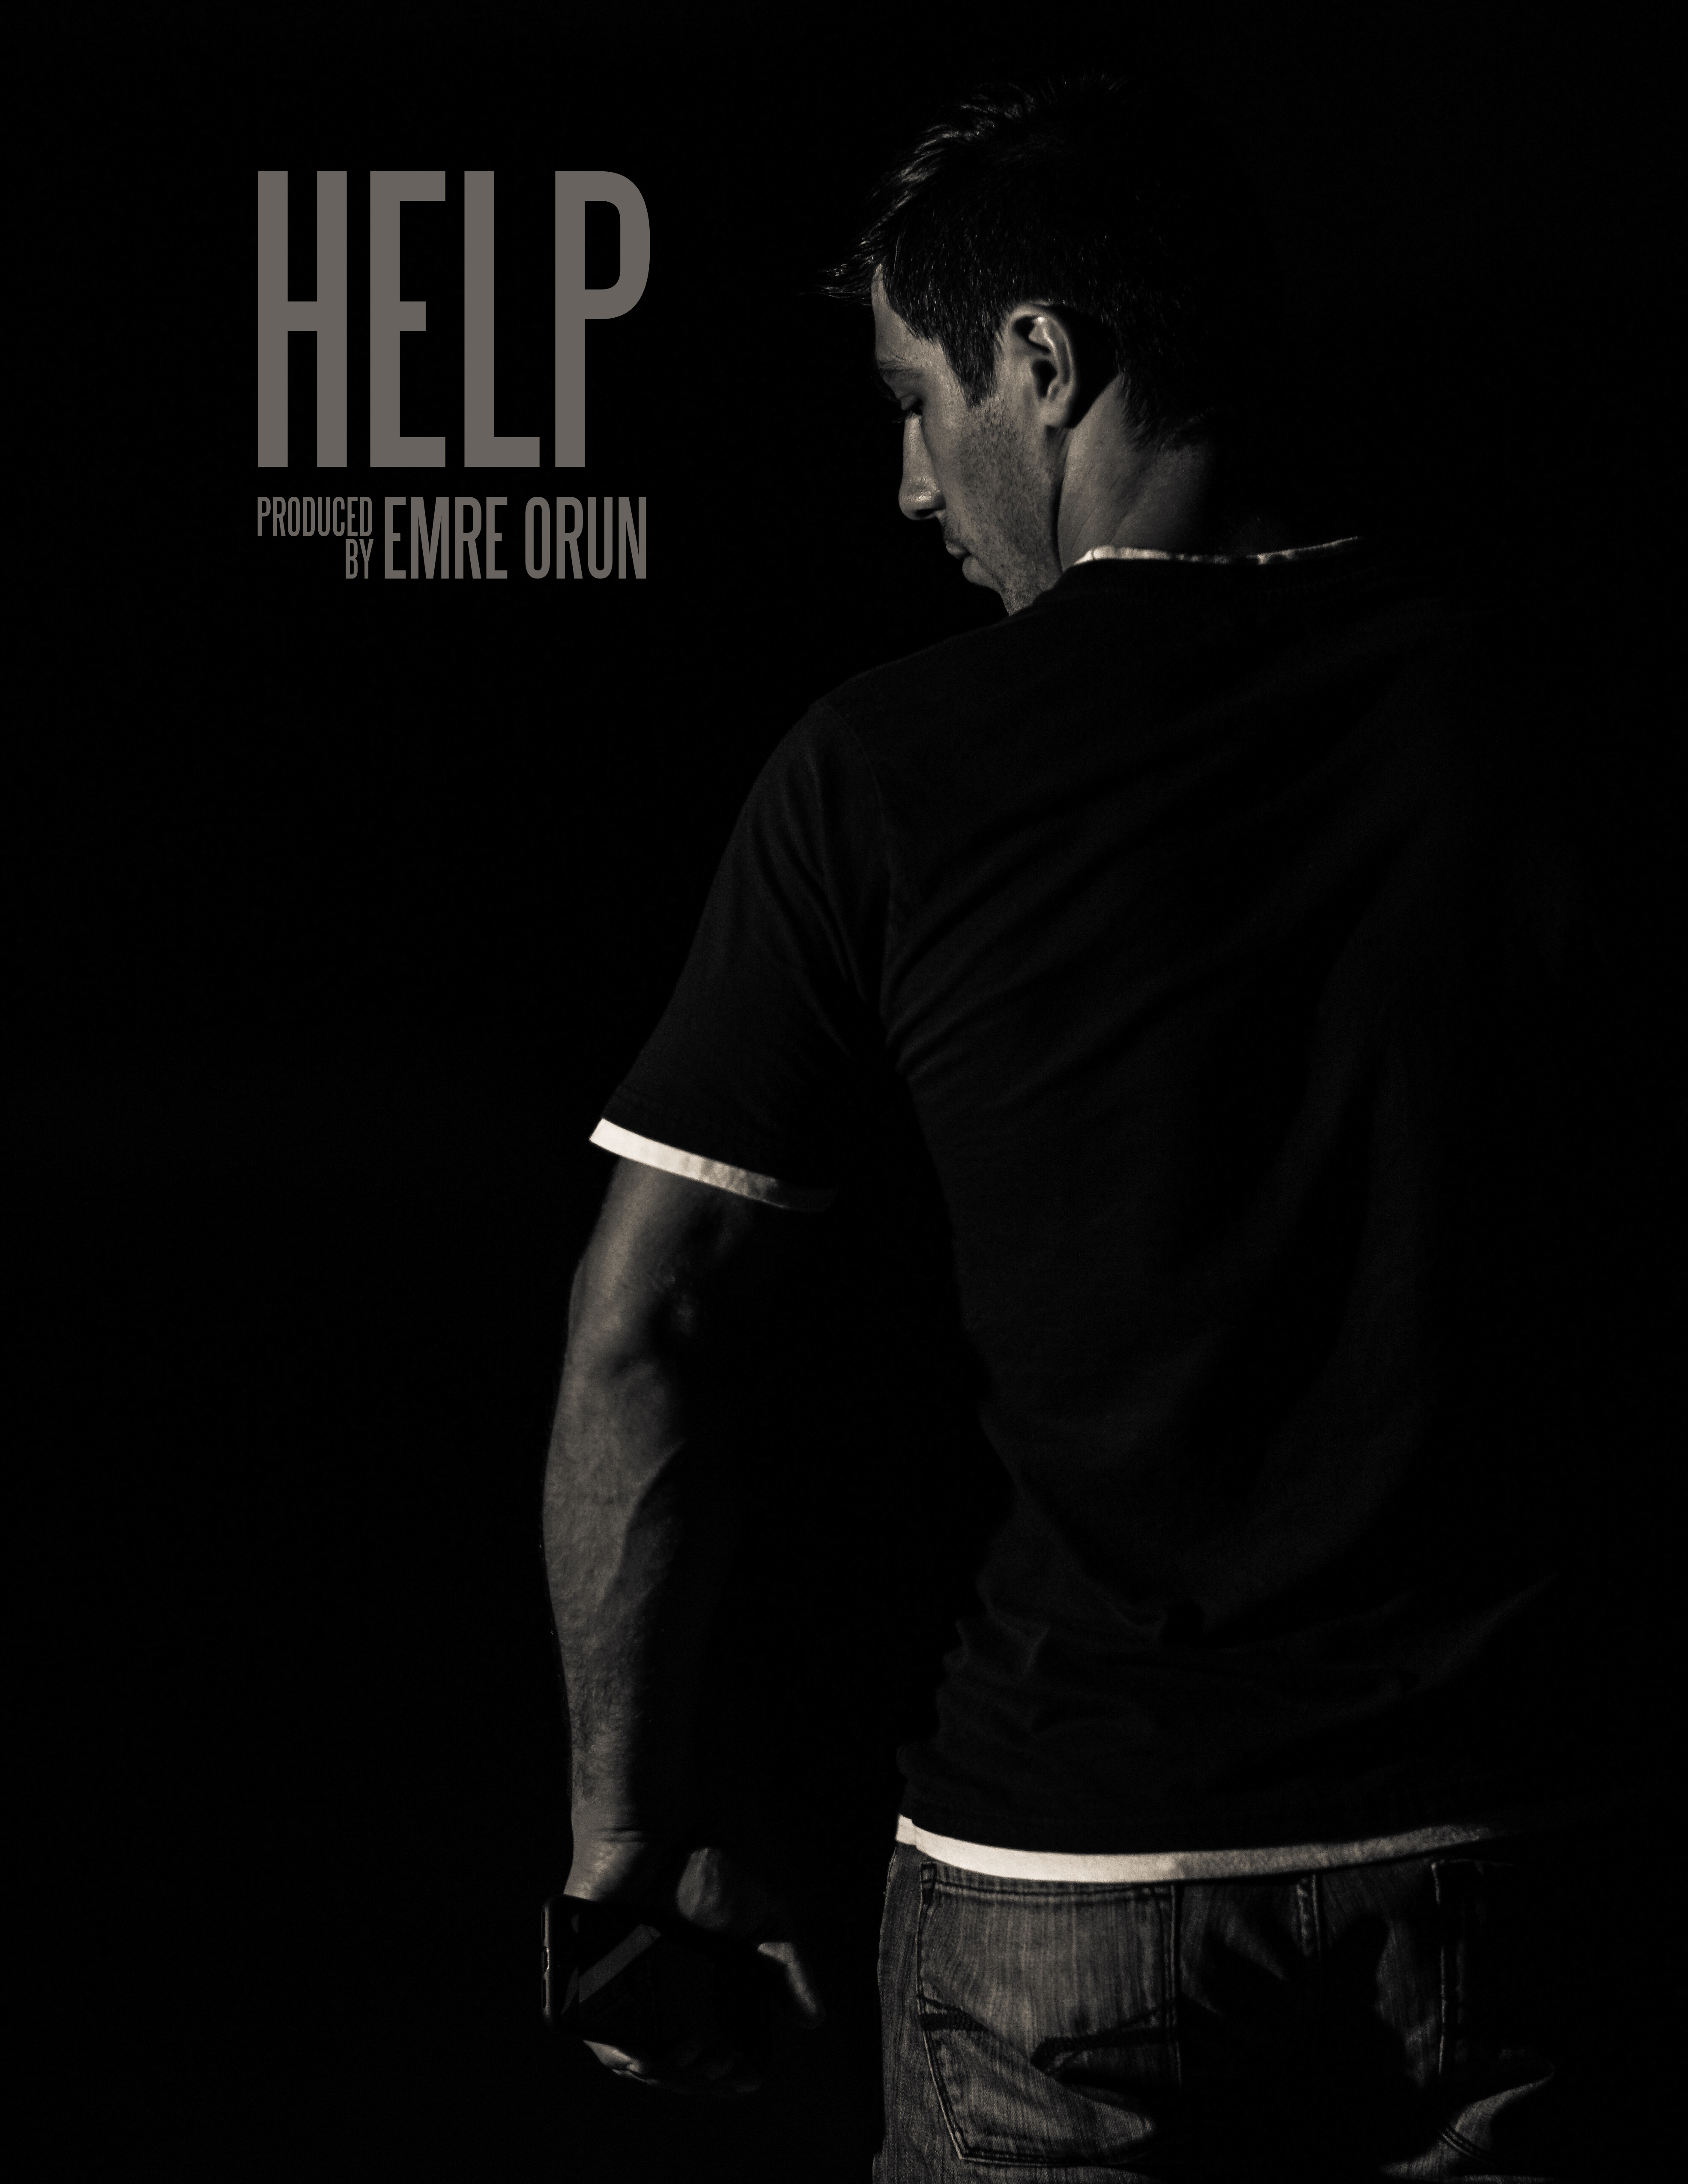 Help Official Poster